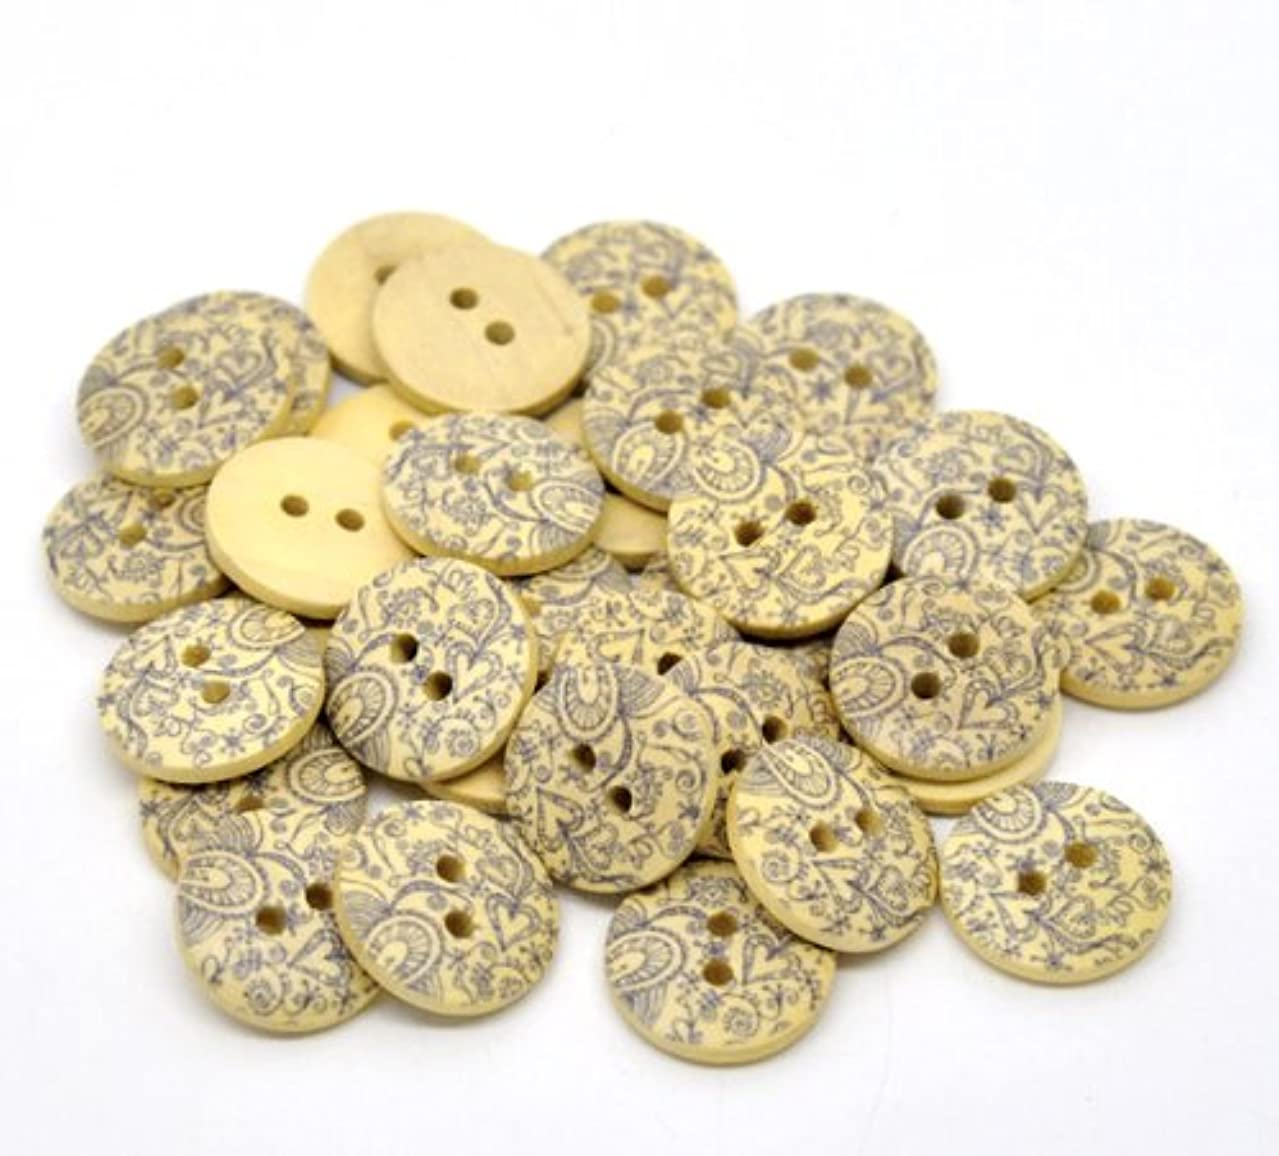 PEPPERLONELY Brand 100PC Hearts 2 Hole Round Wood Buttons Scrapbooking Sewing Buttons 18mm (3/4 Inch)